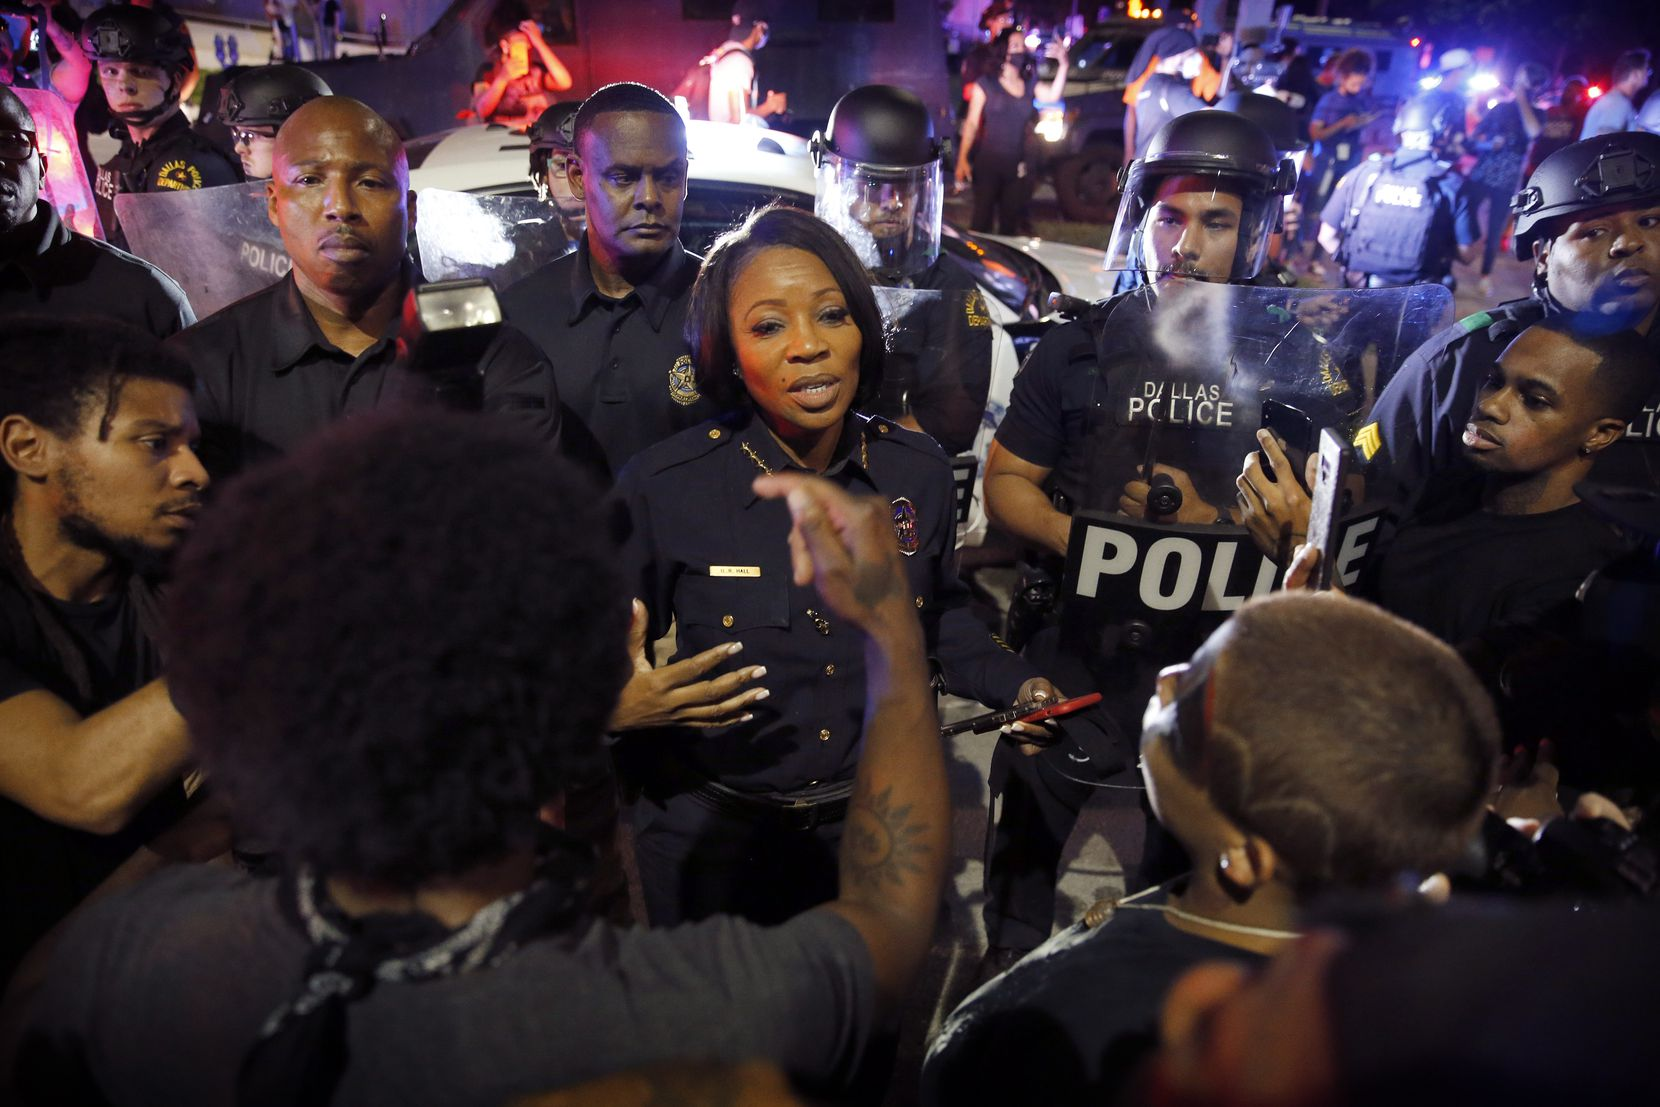 Dallas Police Chief U. Reneé Hall confronted protesters at Young Street and South Griffin Street in downtown Dallas during a May 29 demonstration. Police tactical officers had fired tear gas at protesters in an earlier encounter.